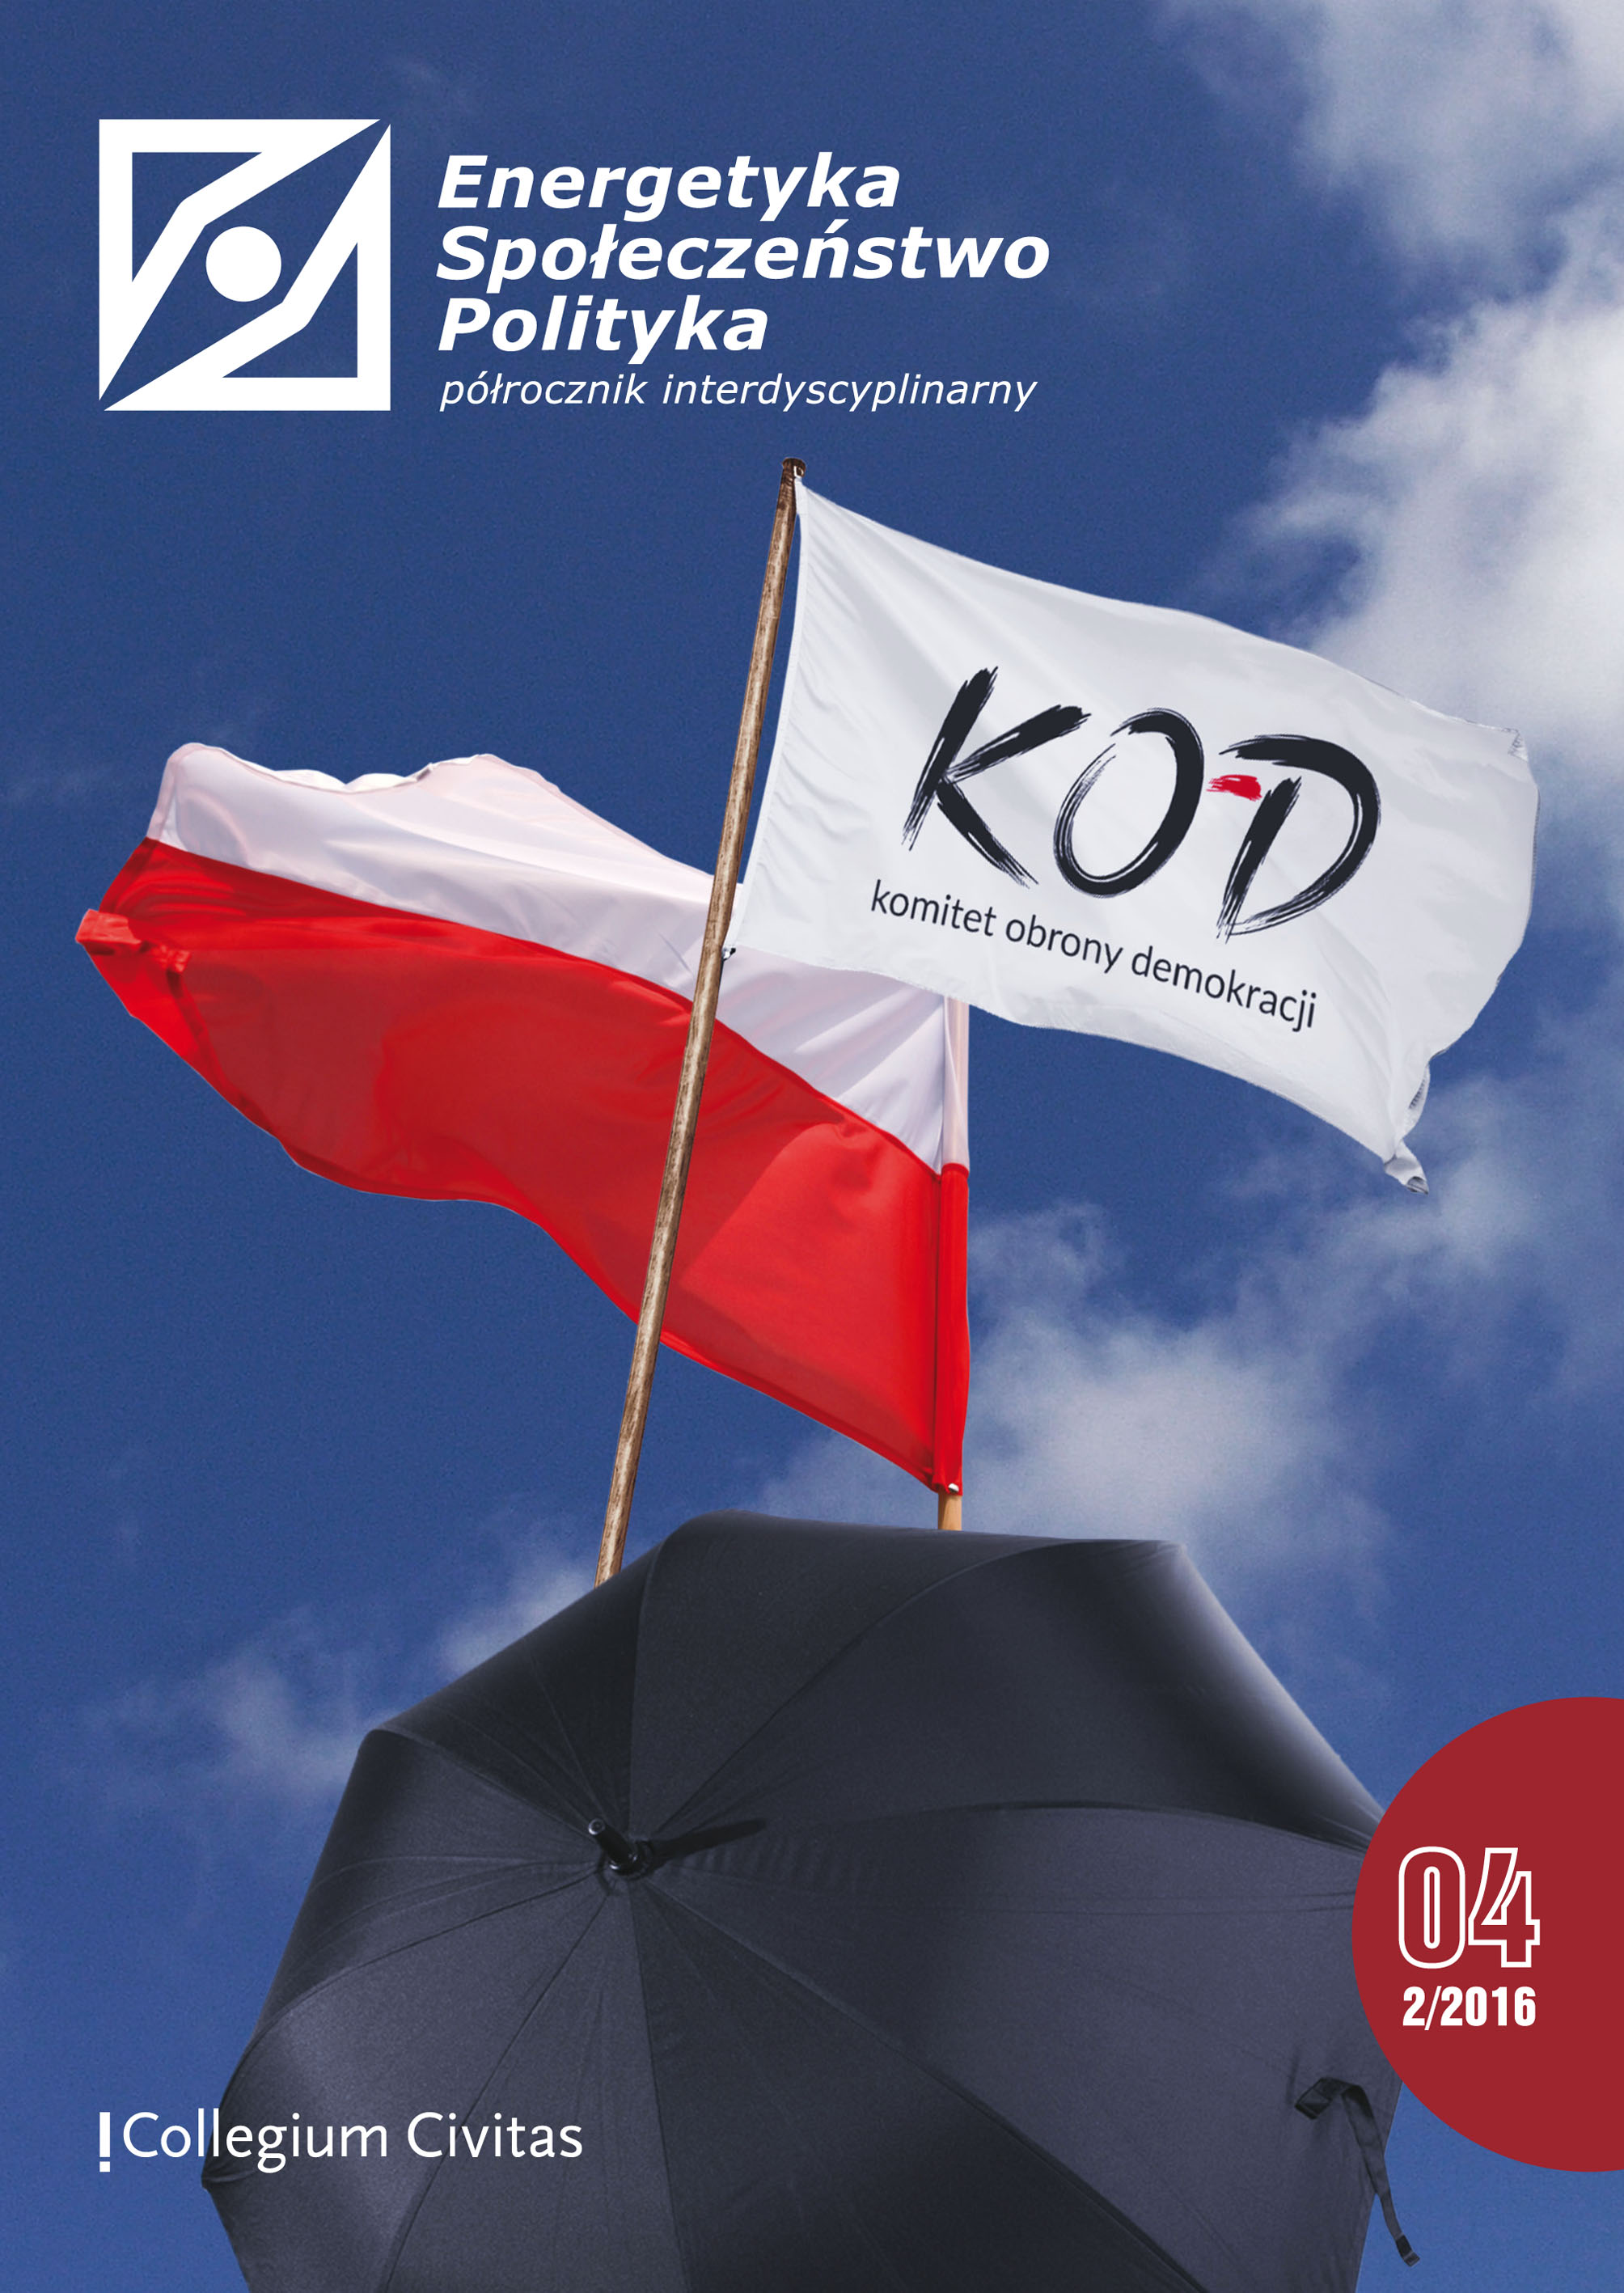 Global investment in Renewable Energy Sources – warning for Poland Cover Image